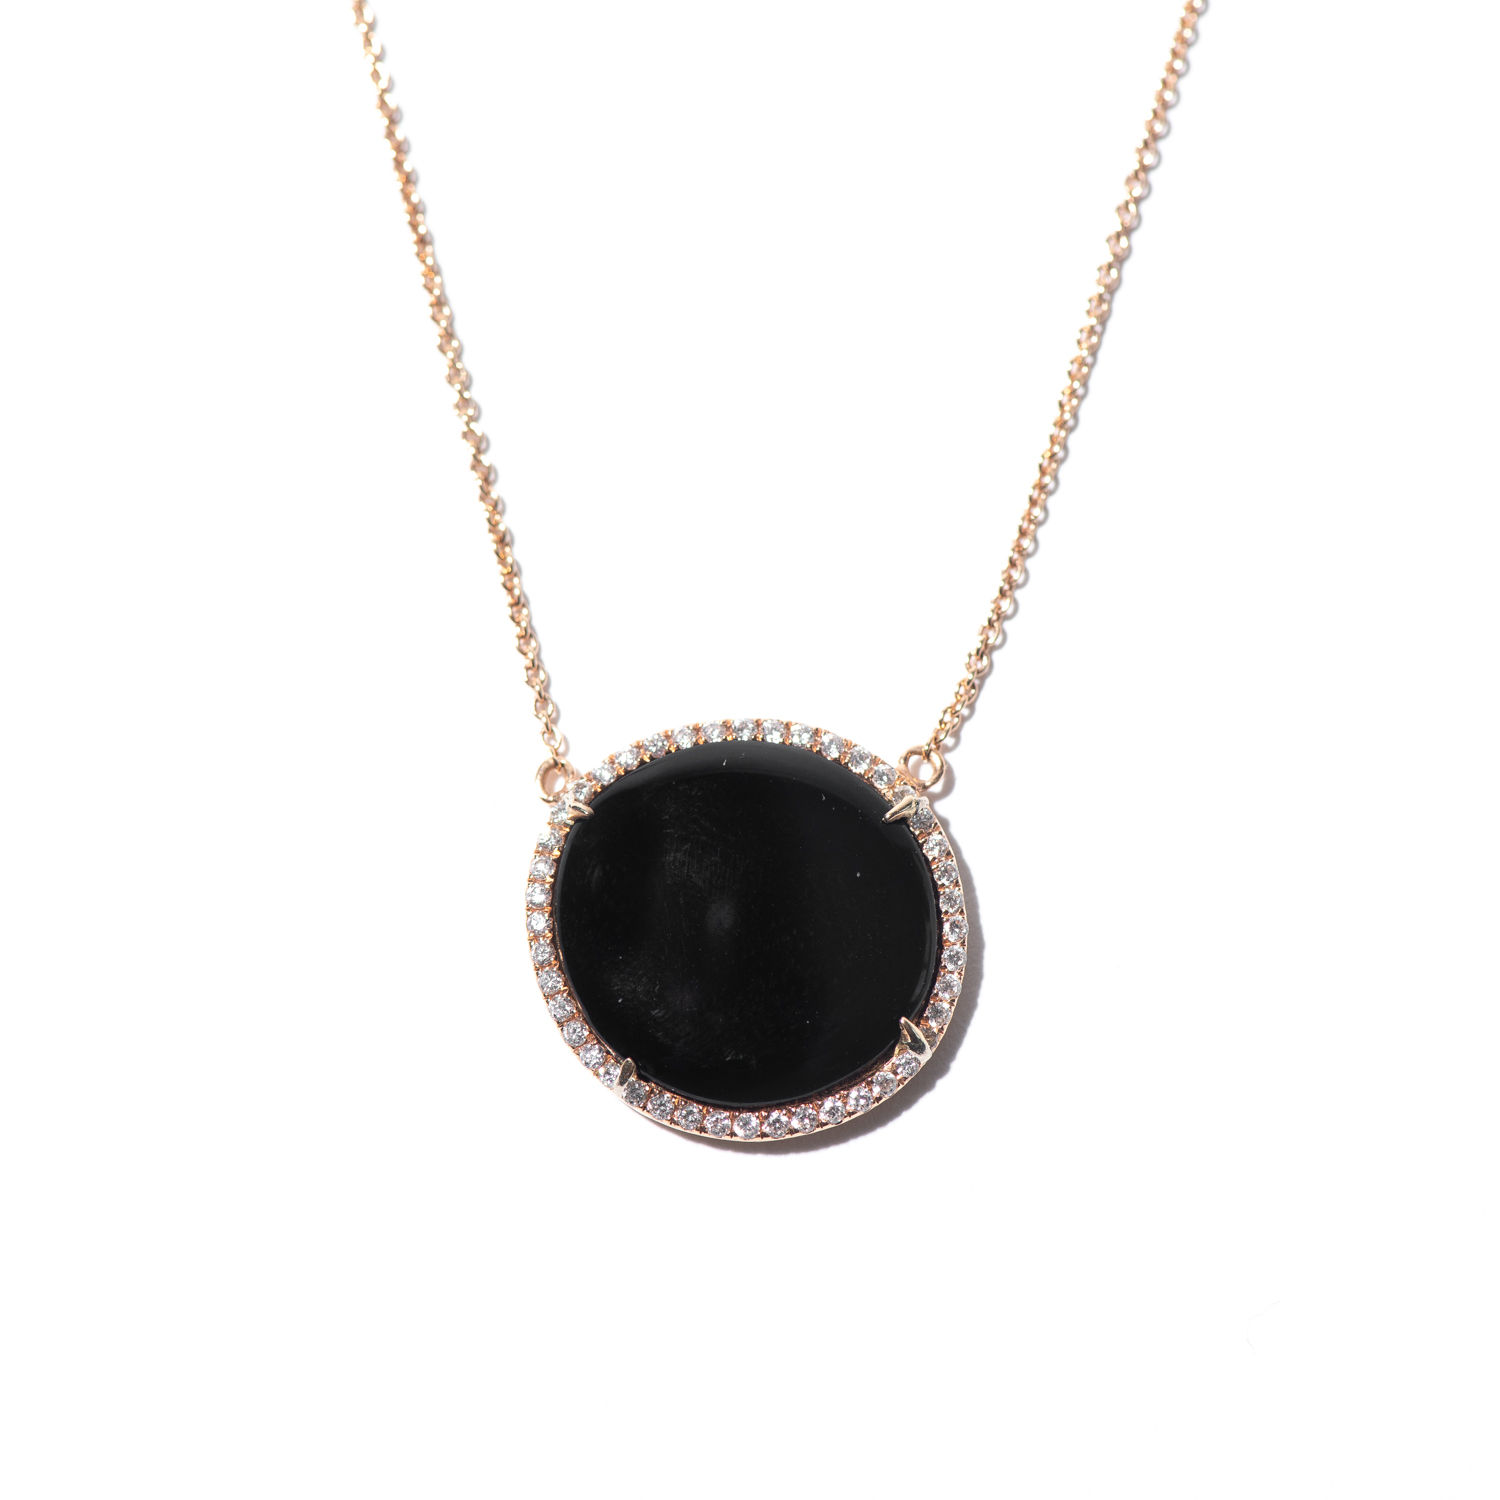 Design Thirty Four. - Diamond and Onyx Charm on Rose Gold Chain